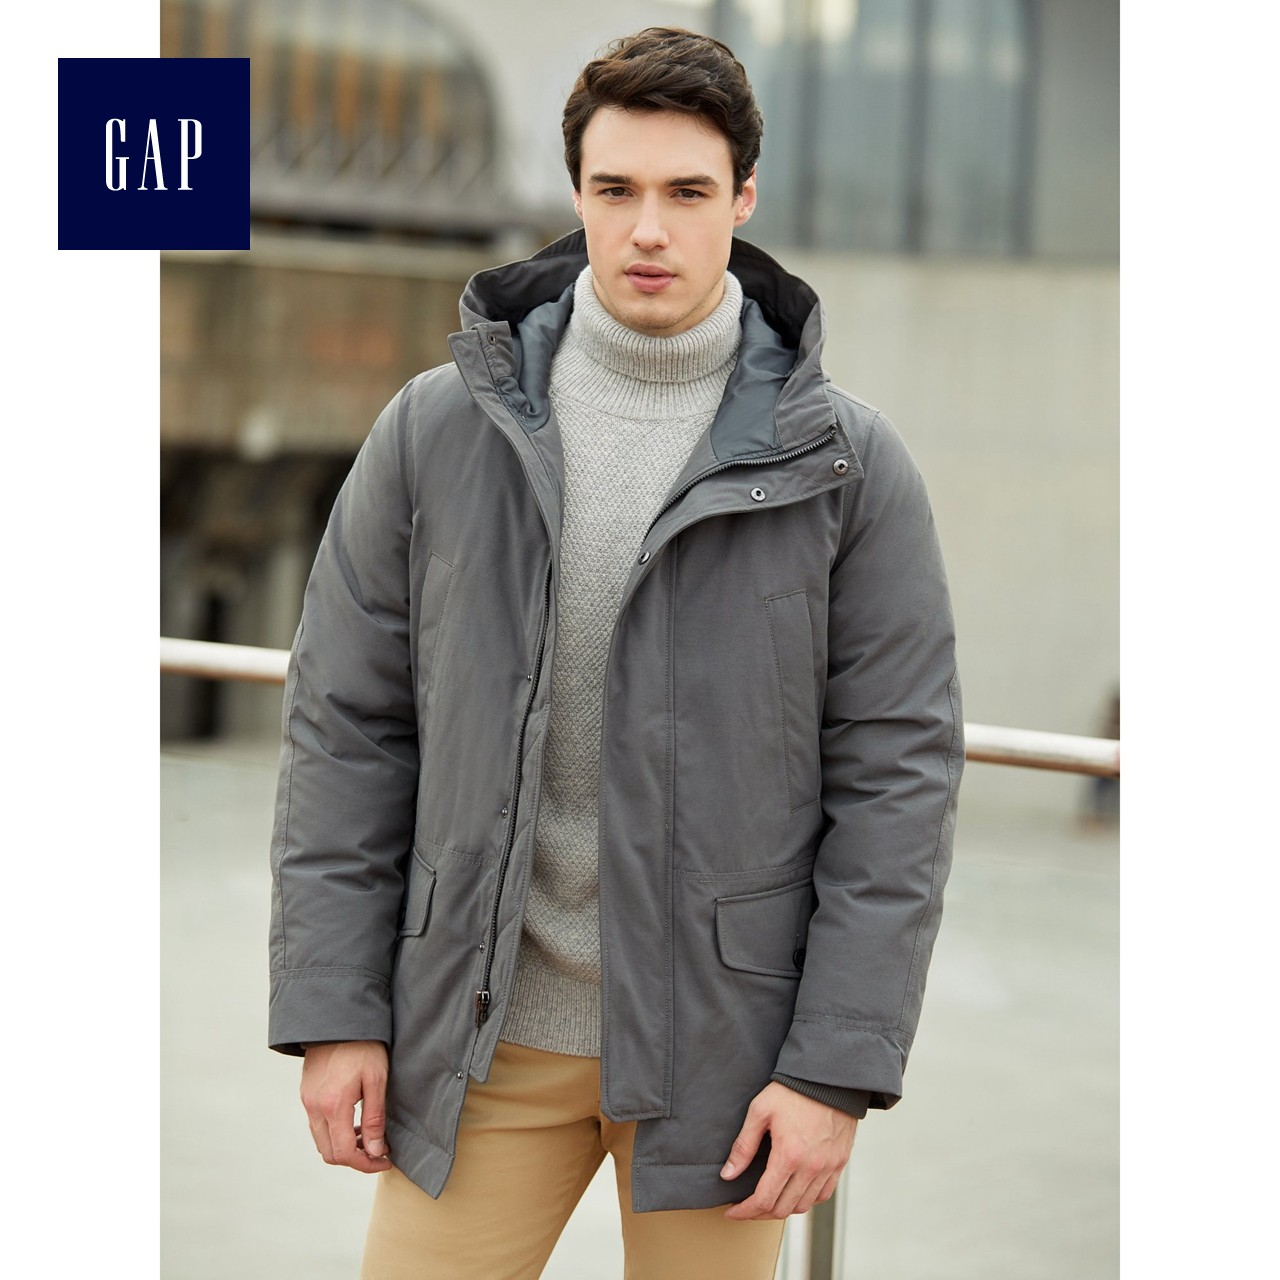 gap in store coupon